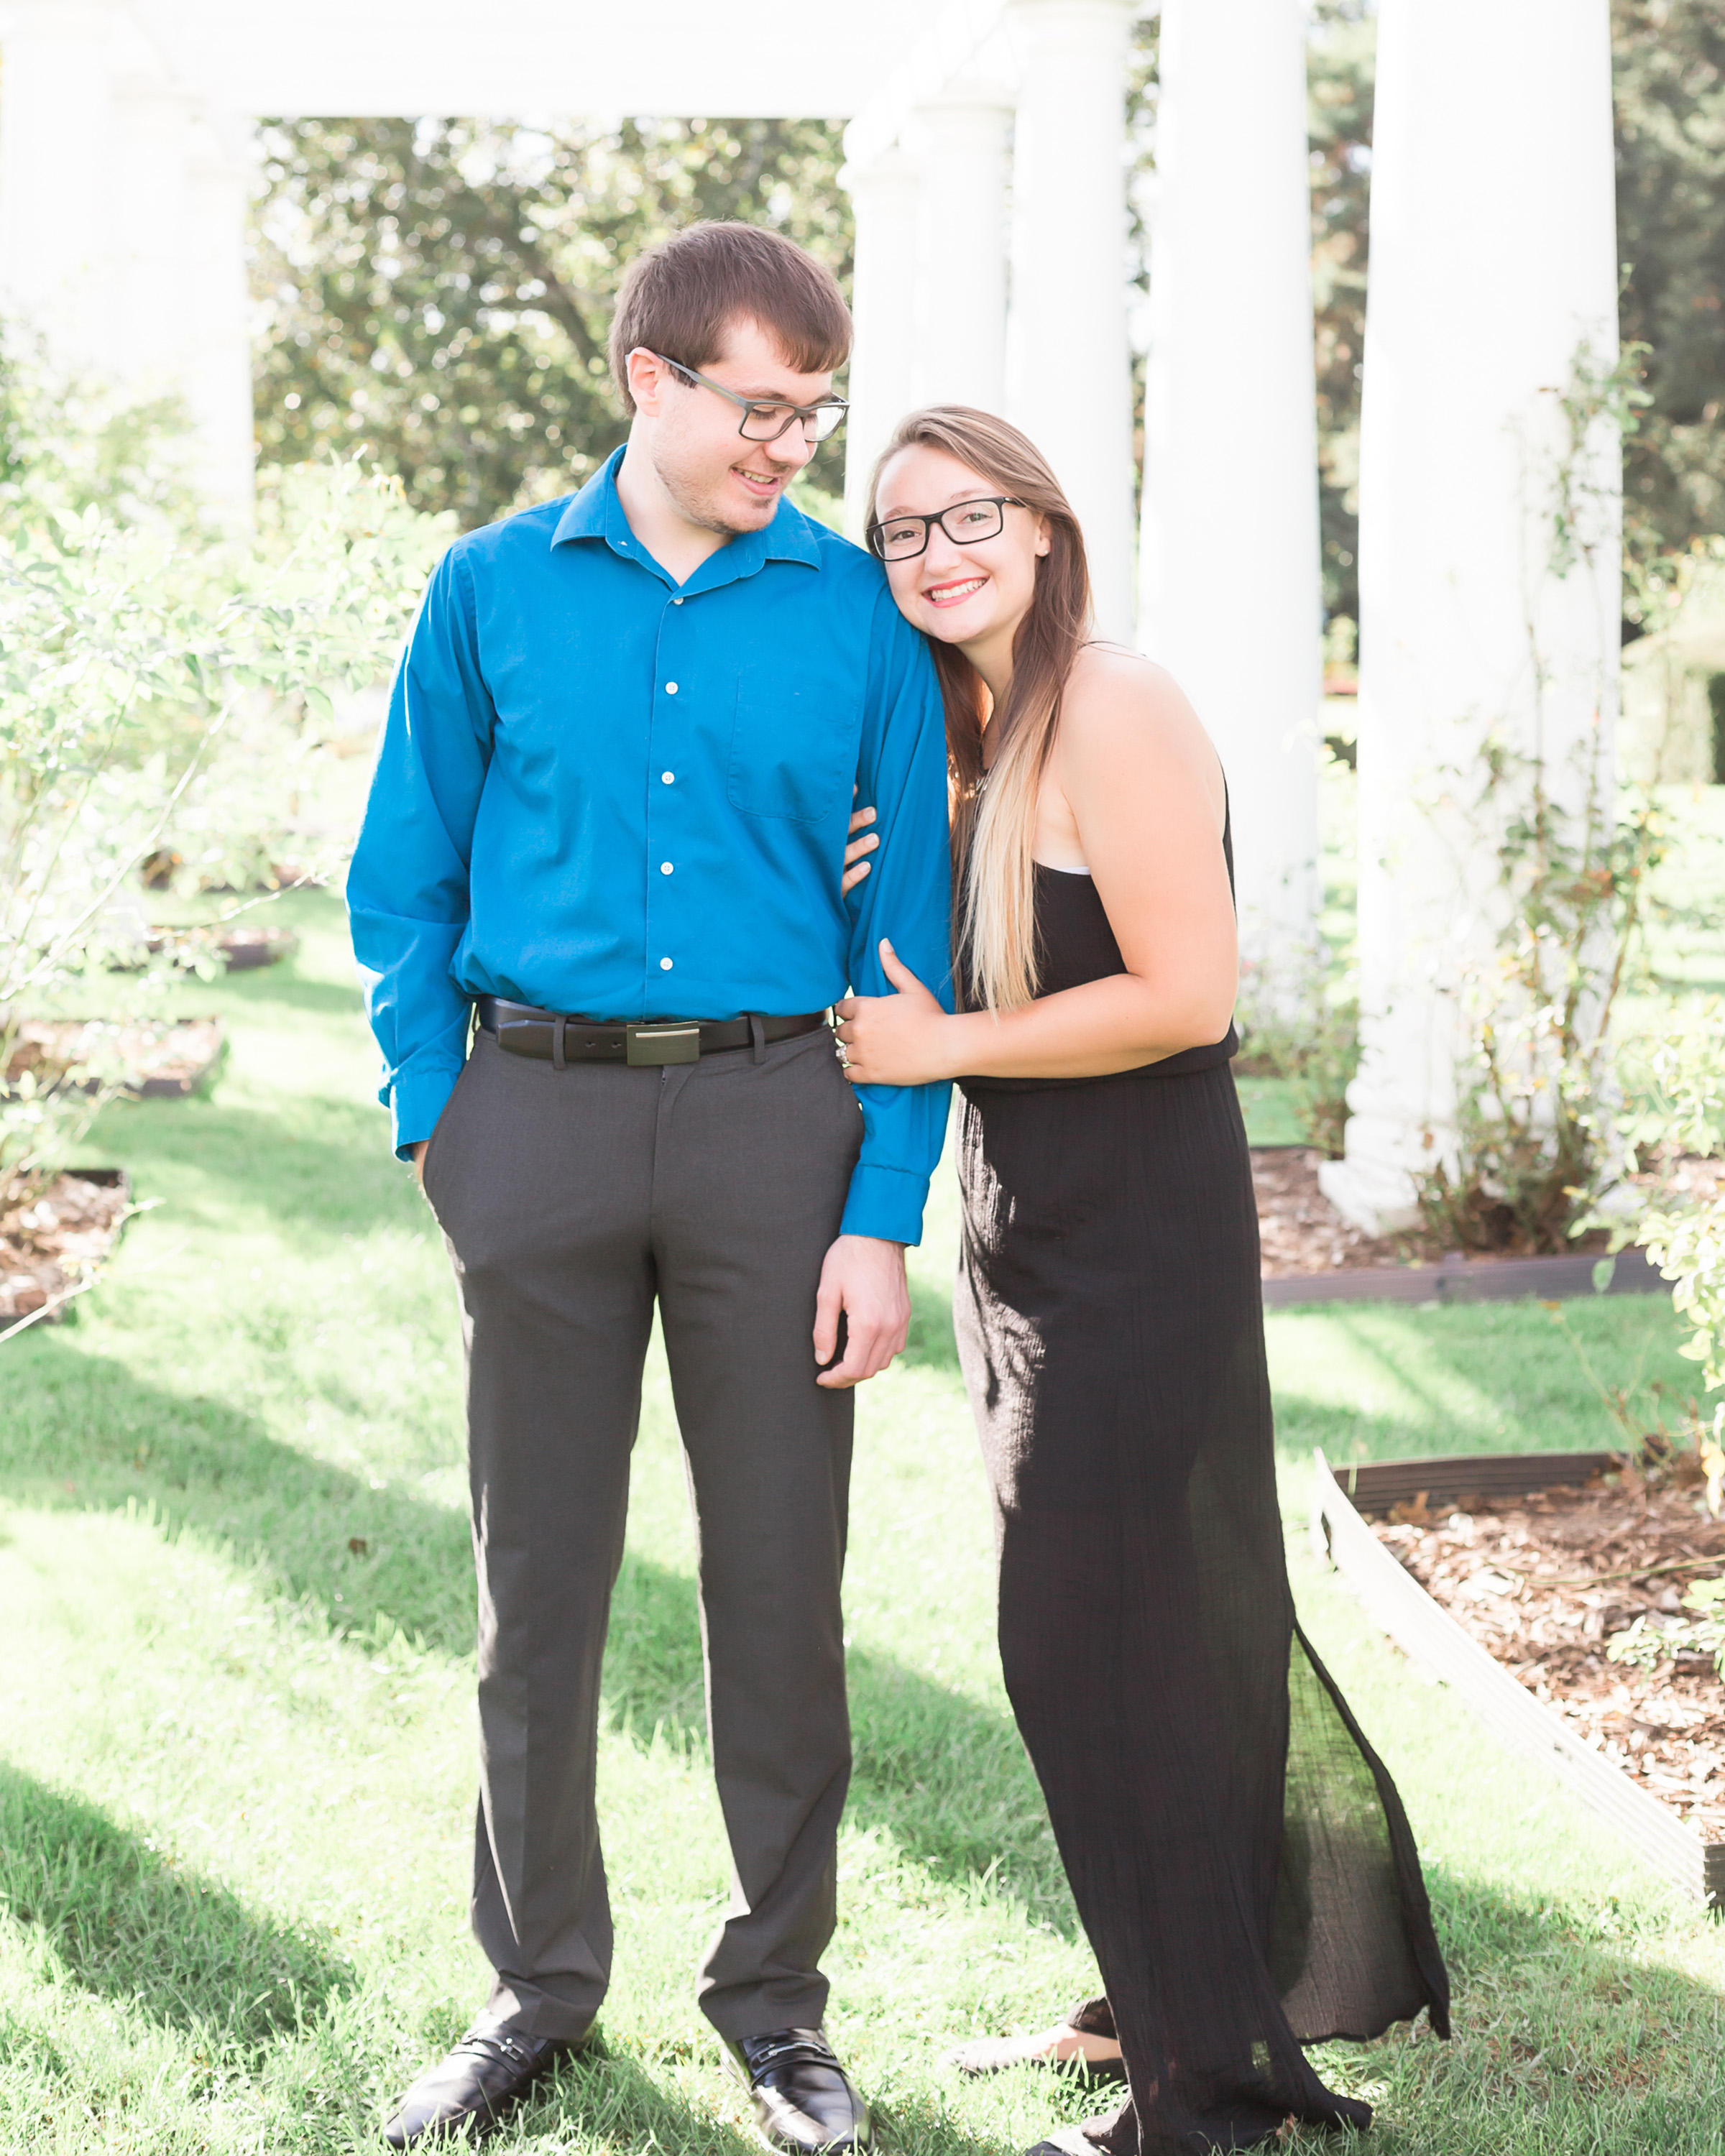 Cheerful Outdoor Fall Engagement Session Simply Seeking Photography02